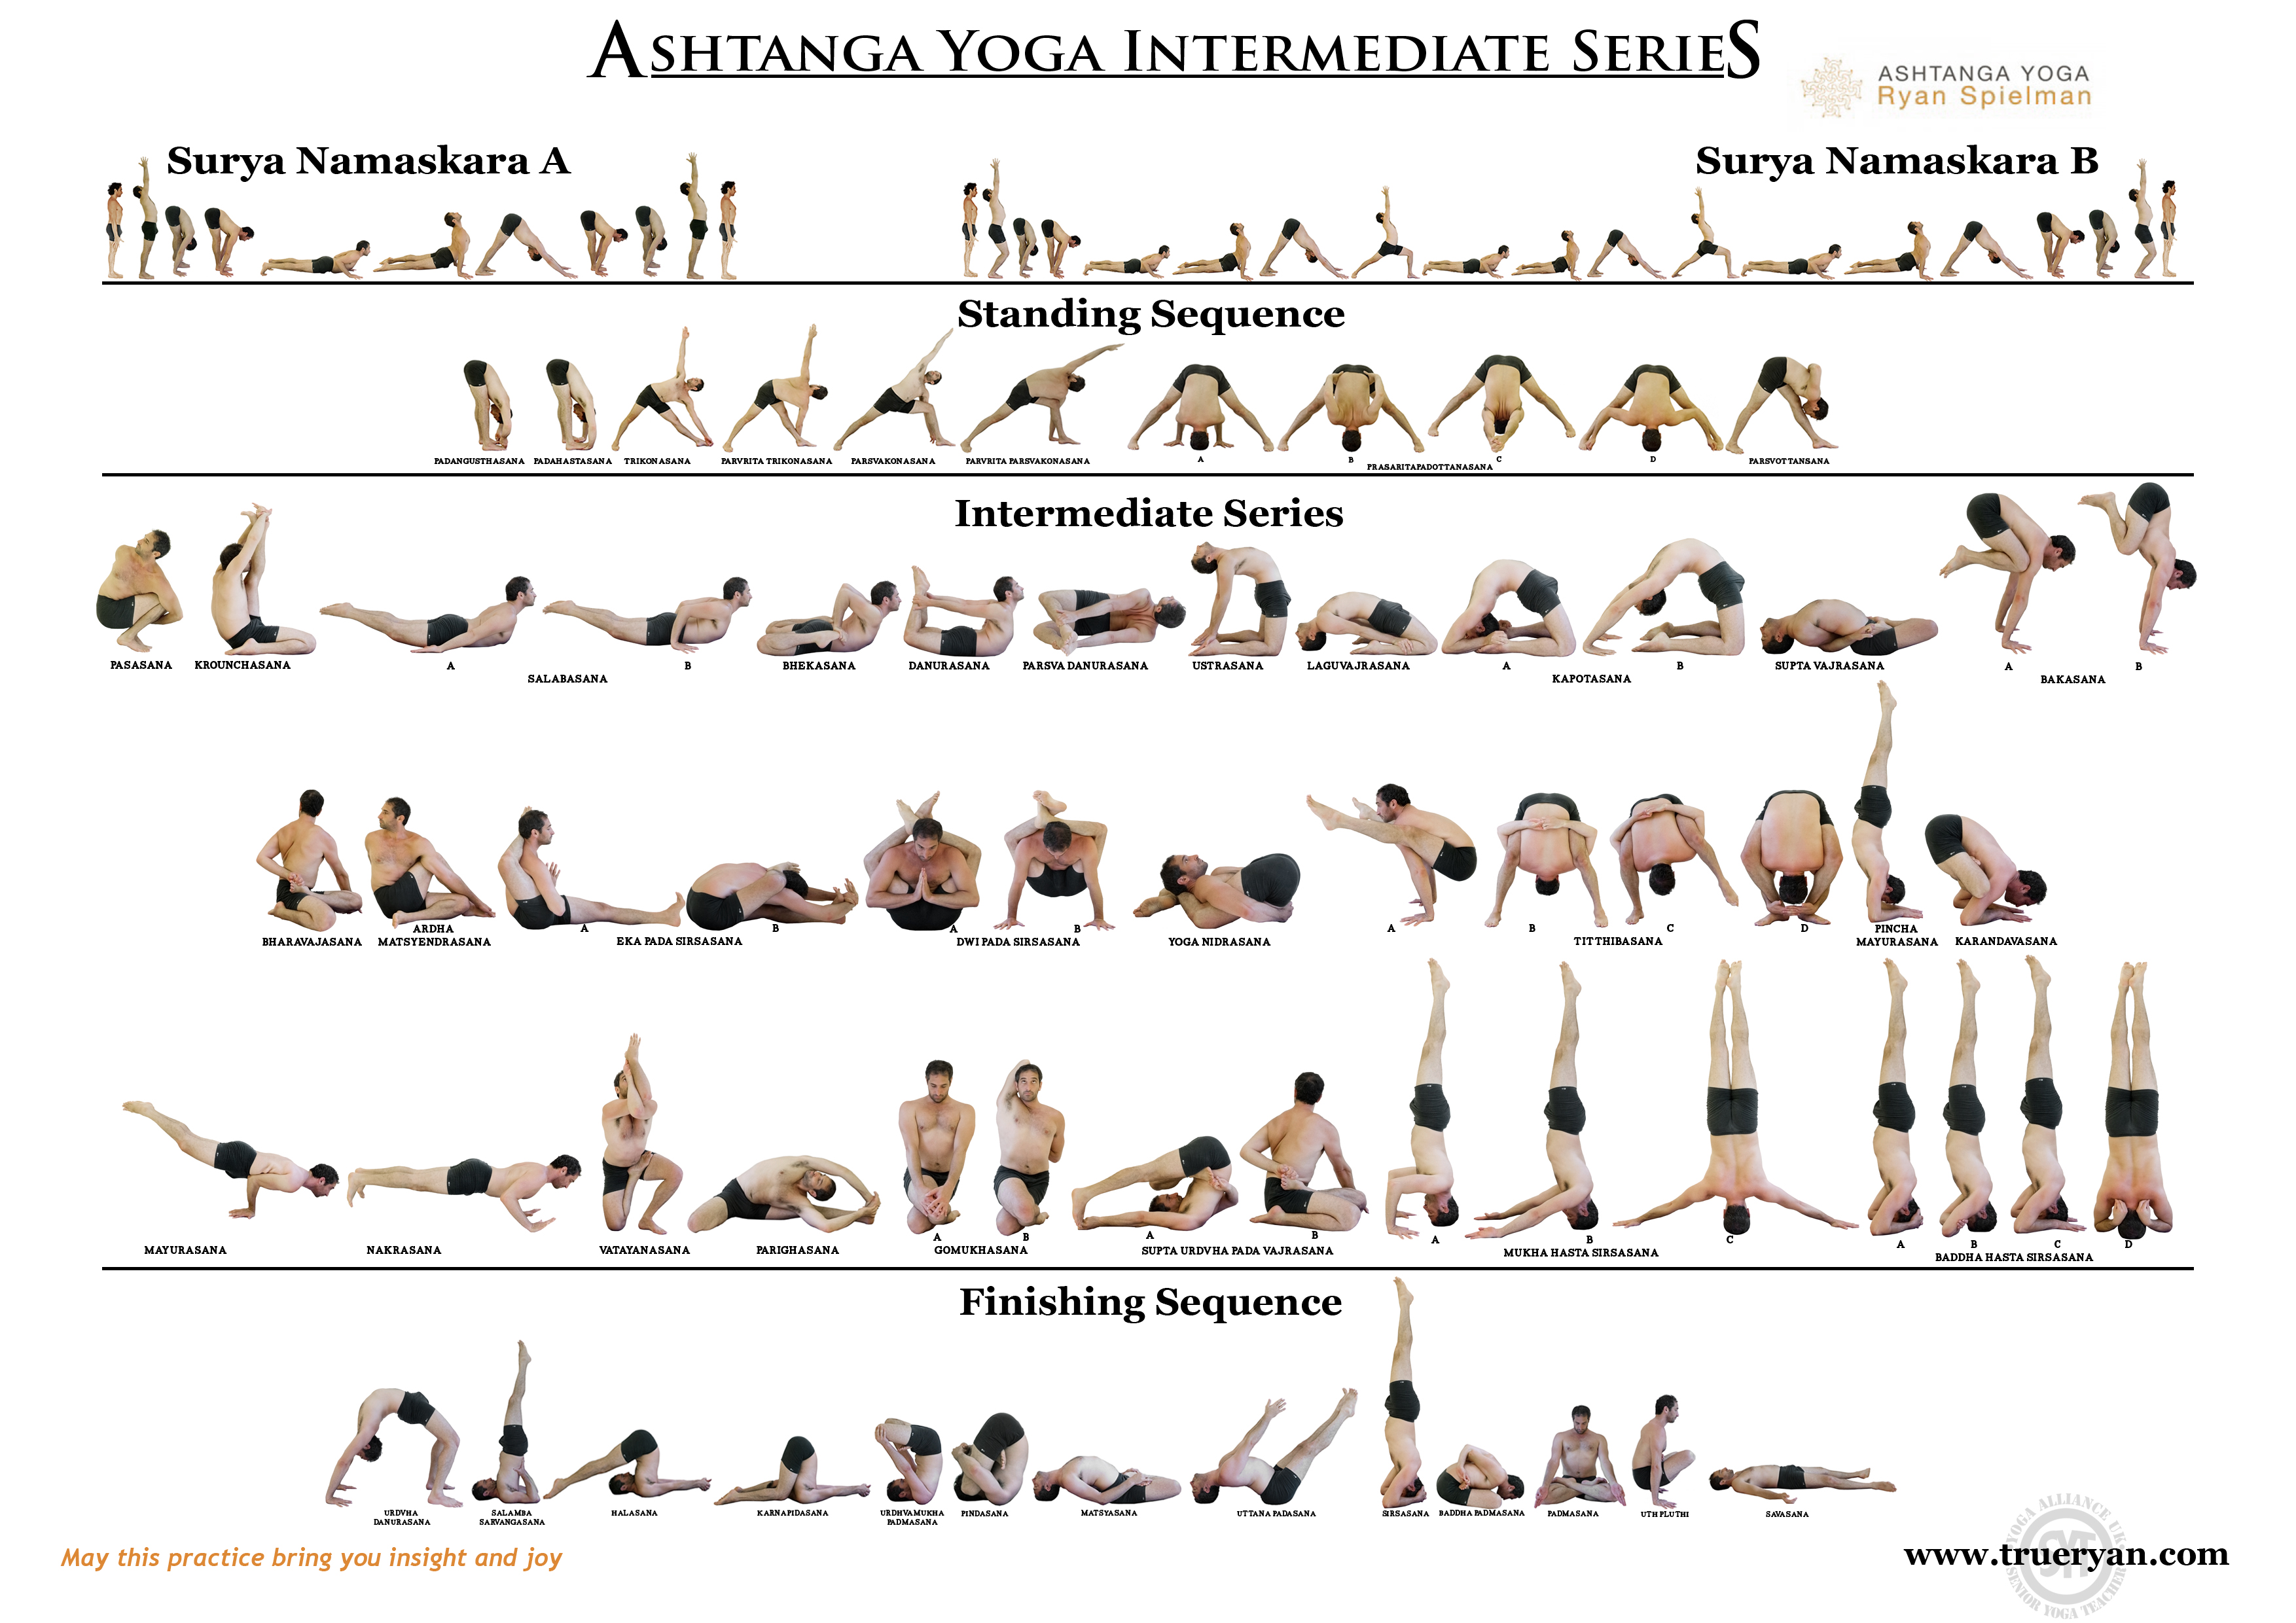 Download The Ashtanga Intermediate Series Chart